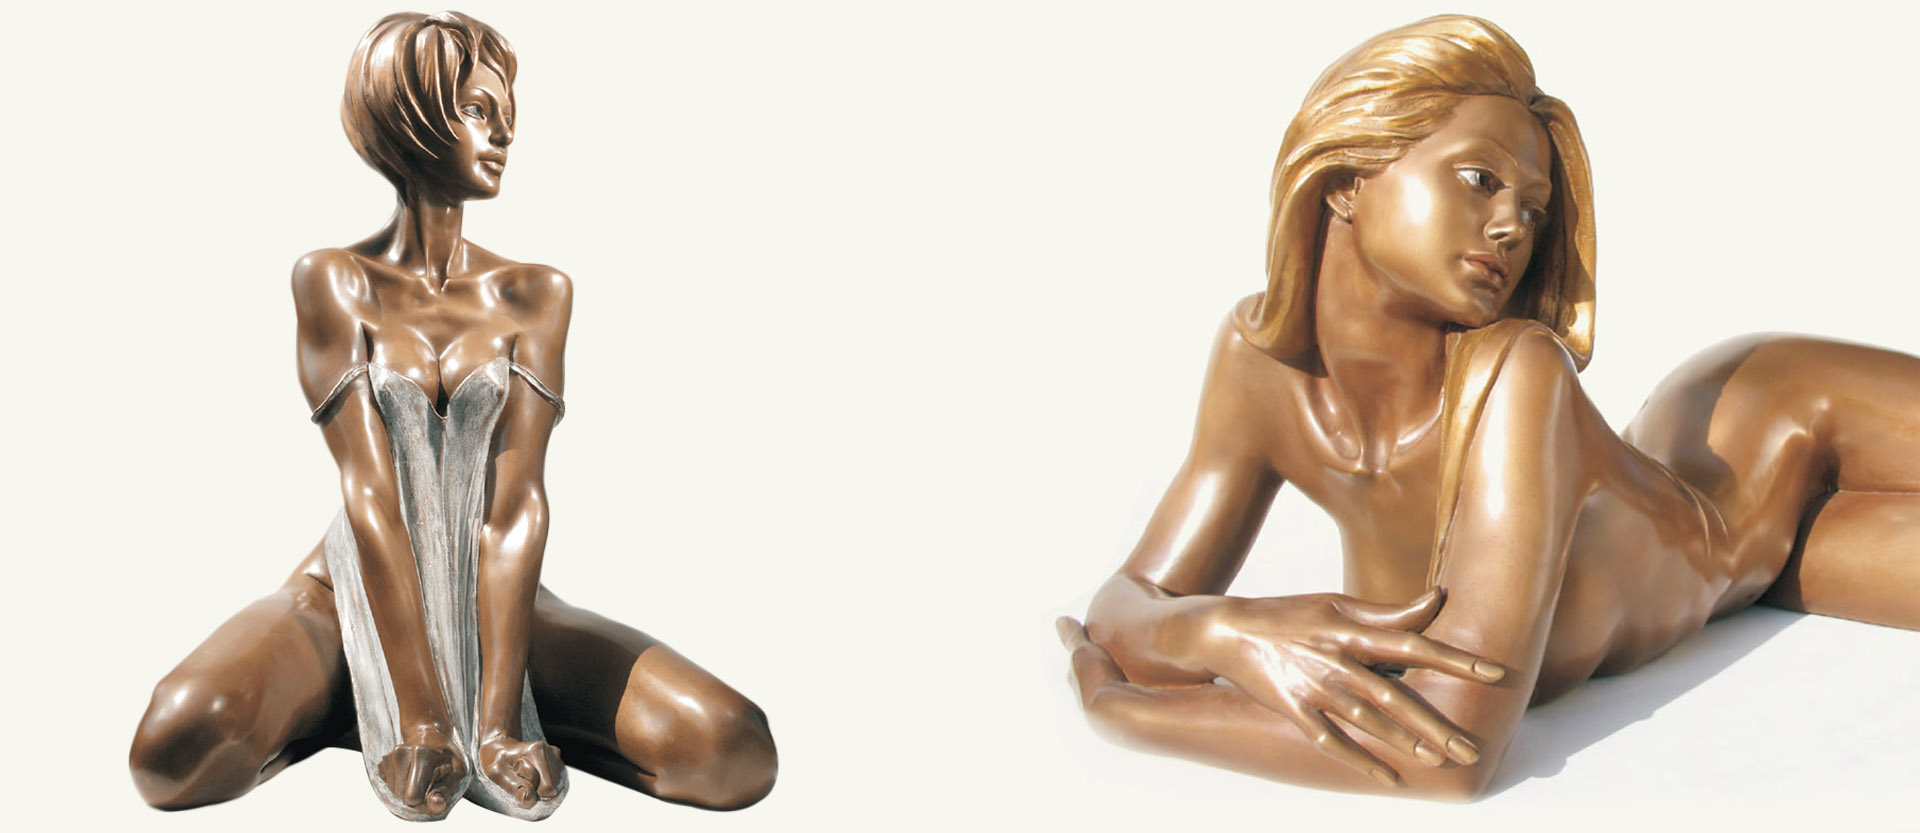 statues-of-women-sculptures-woman-artistic-nudes-sculptures-naked-woman-cover-11